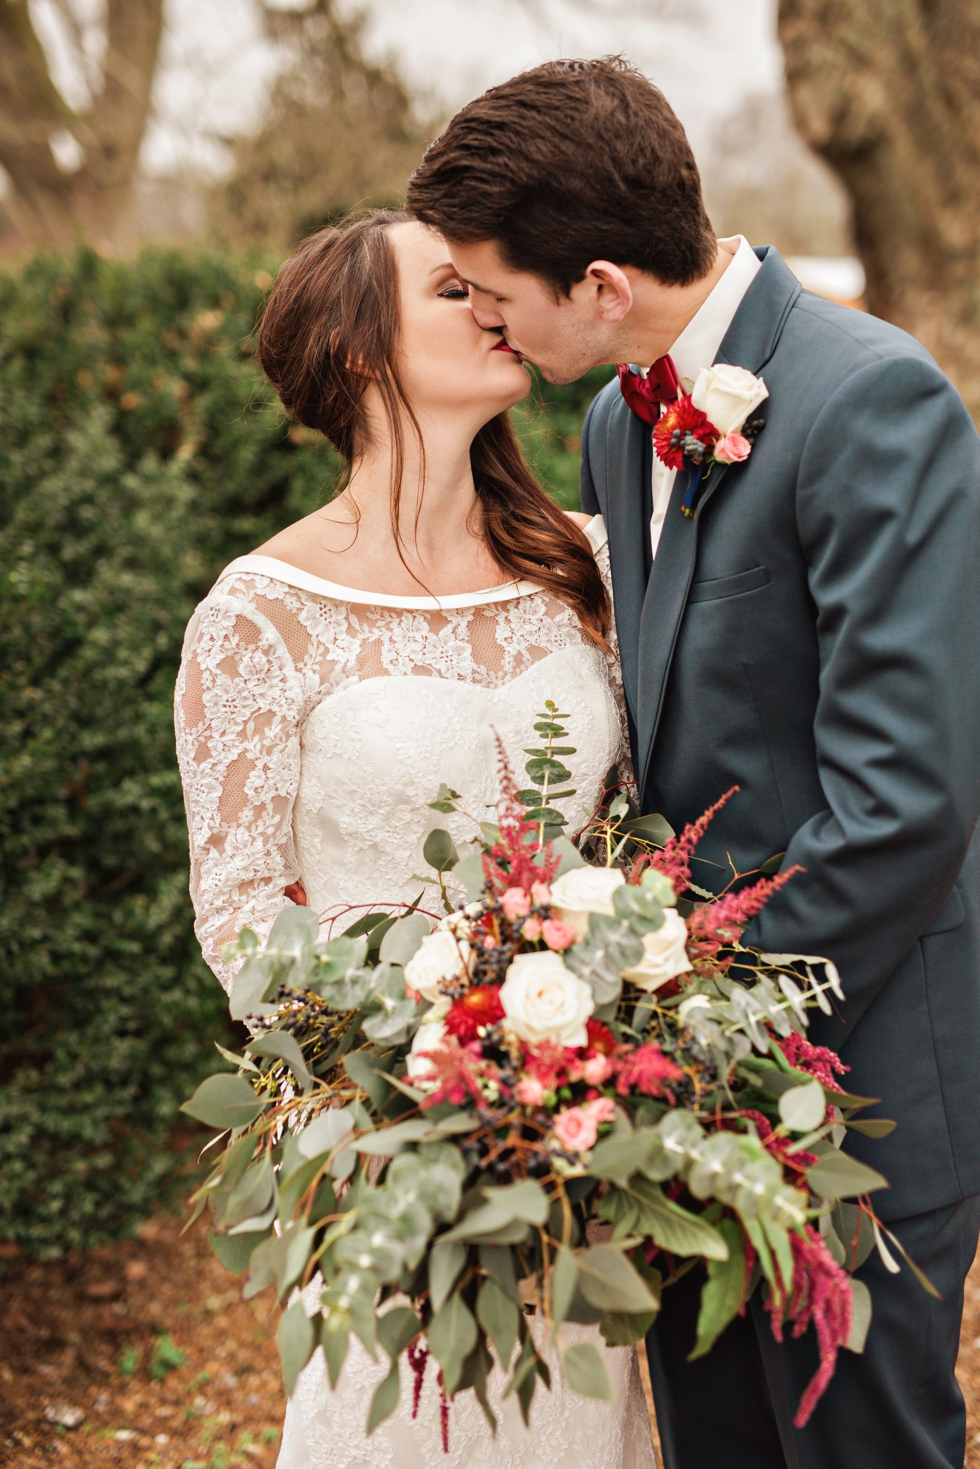 Nashville Wedding at Homestead Manor | Nashville Wedding Photographer